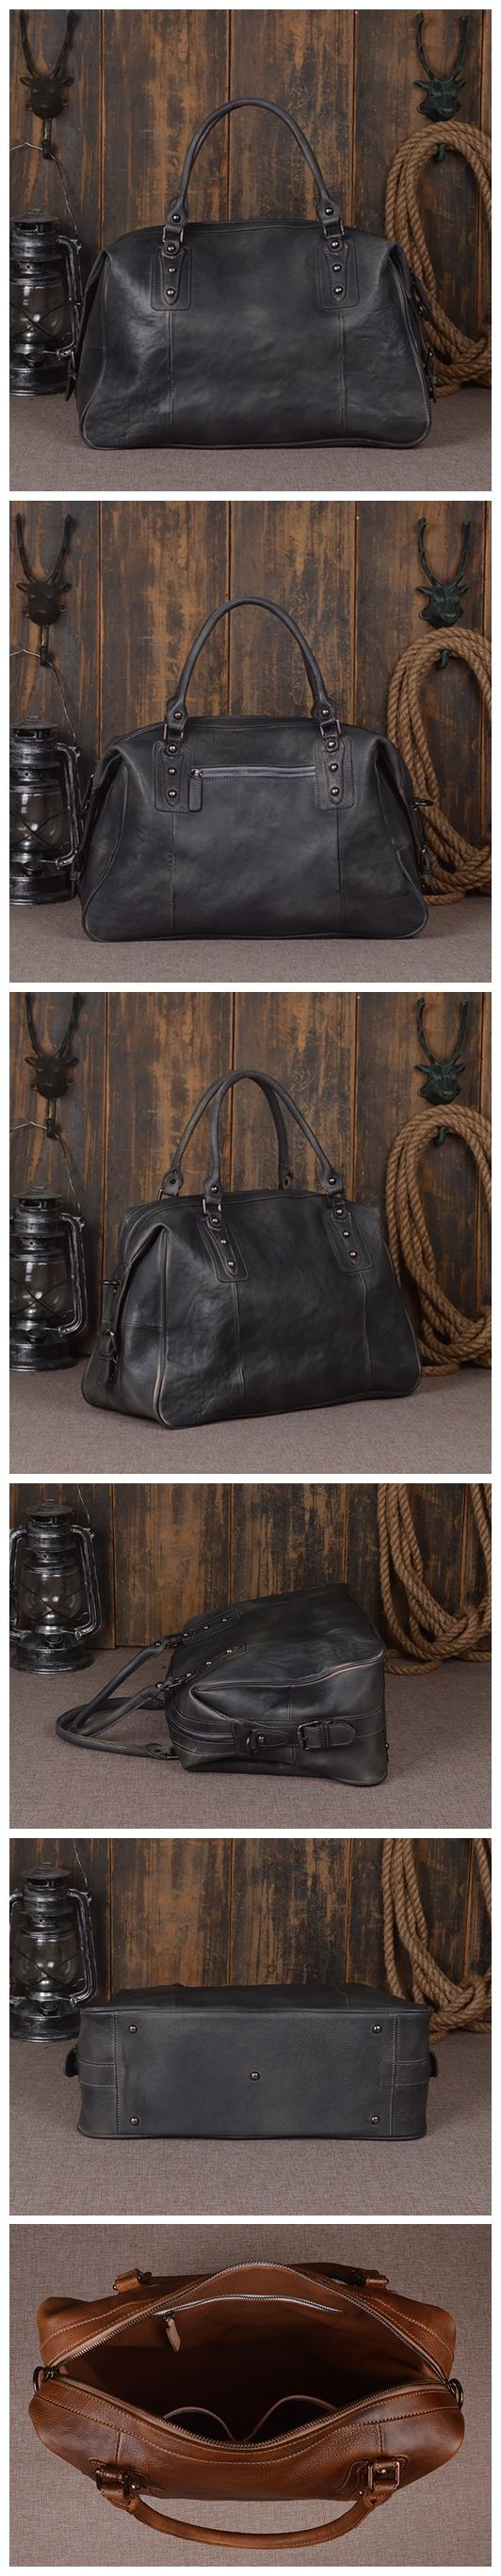 "Leather Duffel Bag for Men and Women Travel Luggage Gym Tote Bag 9029 Model Number: 9029 Dimensions: 16.9""L x 6.7""W x 11.4""H / 43cm(L) x 17cm(W) x 29cm(H) Weight: 3.5lb / 1.6kg Hardware: Brass Hardwar"